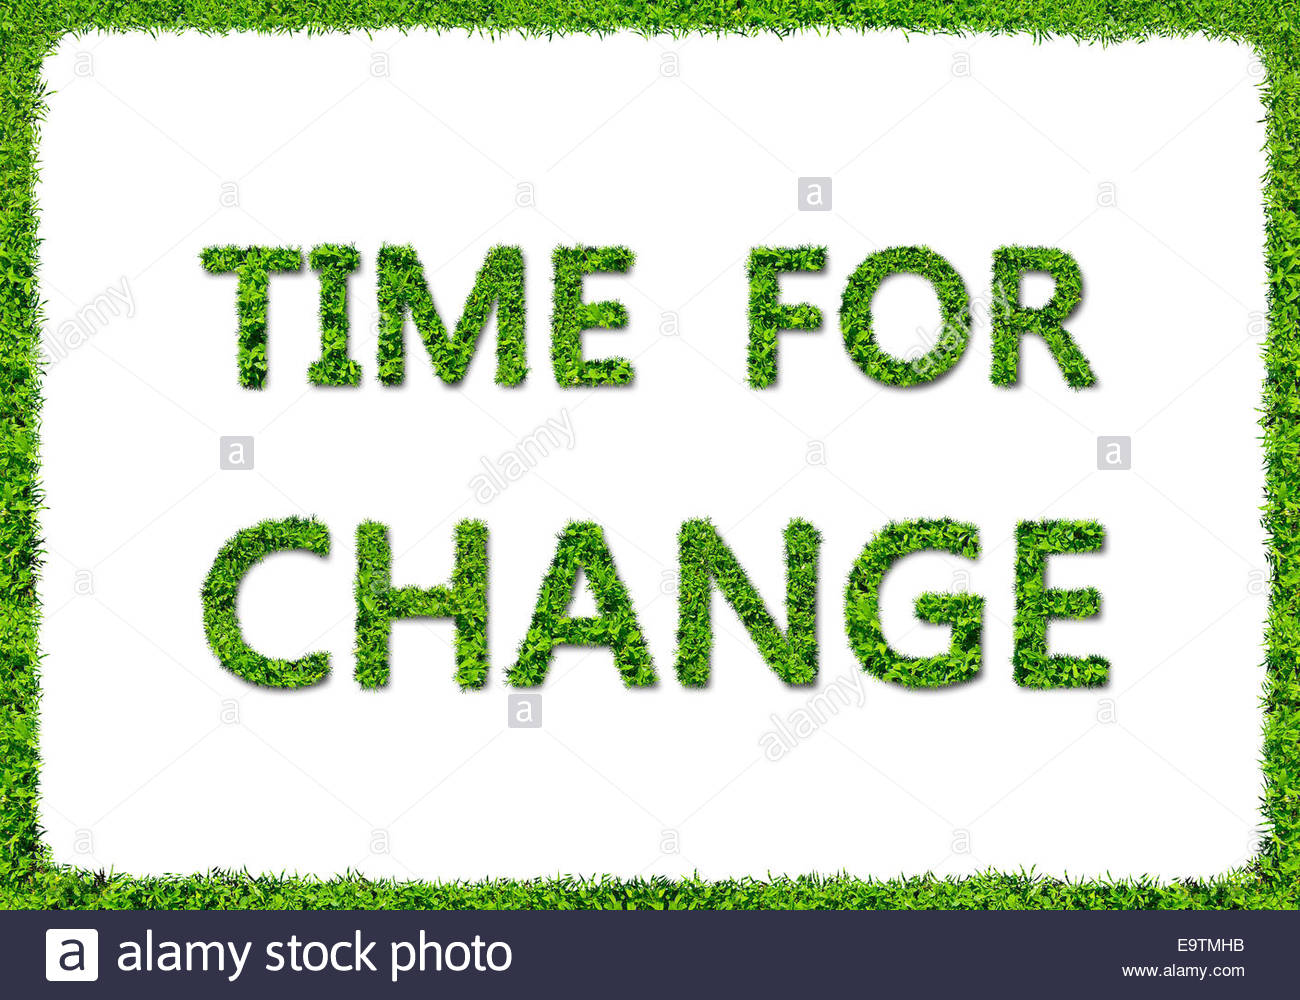 TIME FOR CHANGE - green grass concept - Stock Image